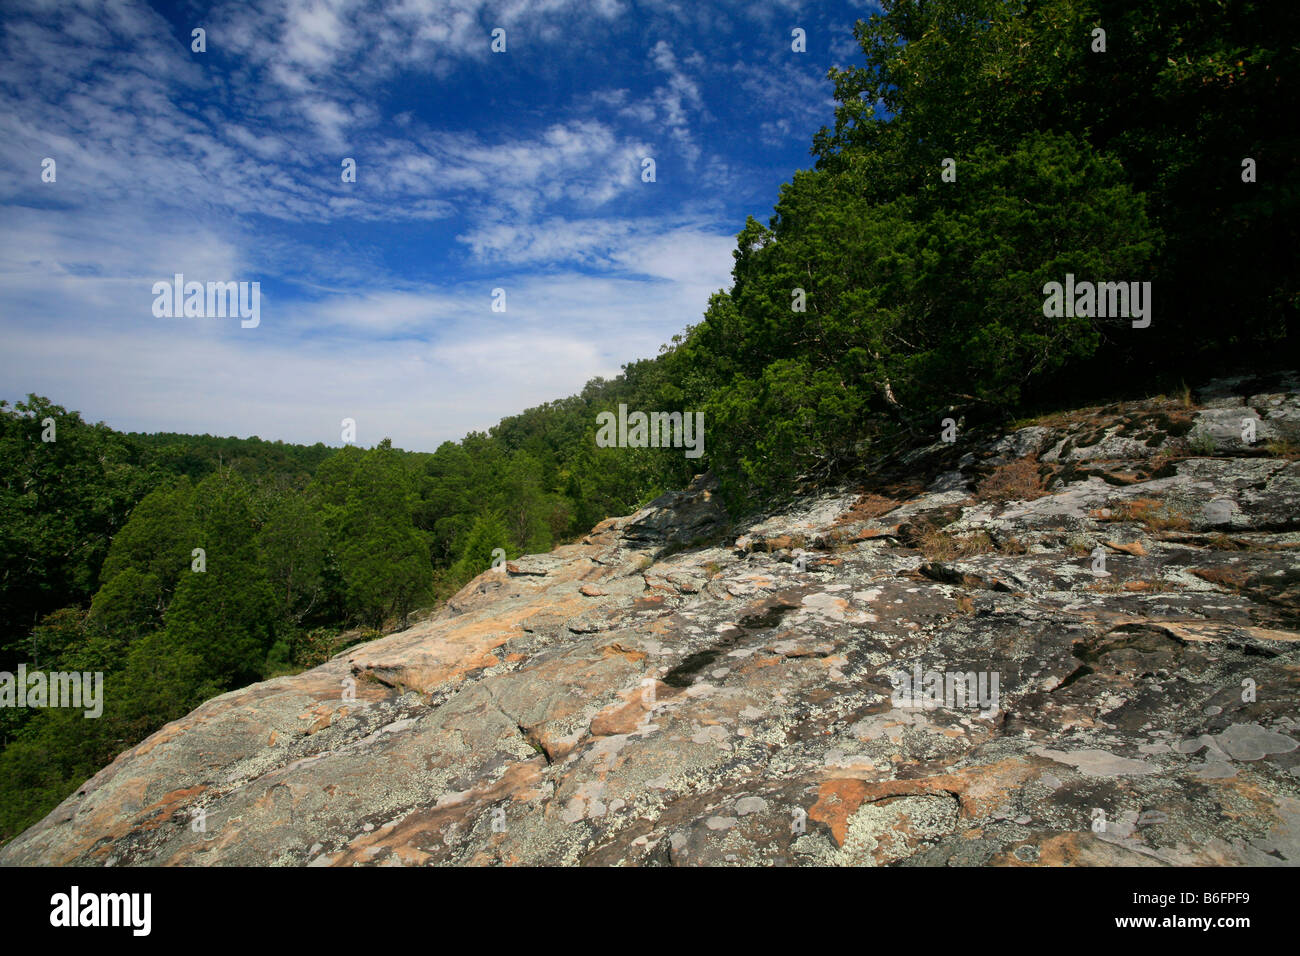 Sandstone formation at the Rim Rock Trail, a hiking tour in the Shawnee National Forest, Illinois, USA - Stock Image